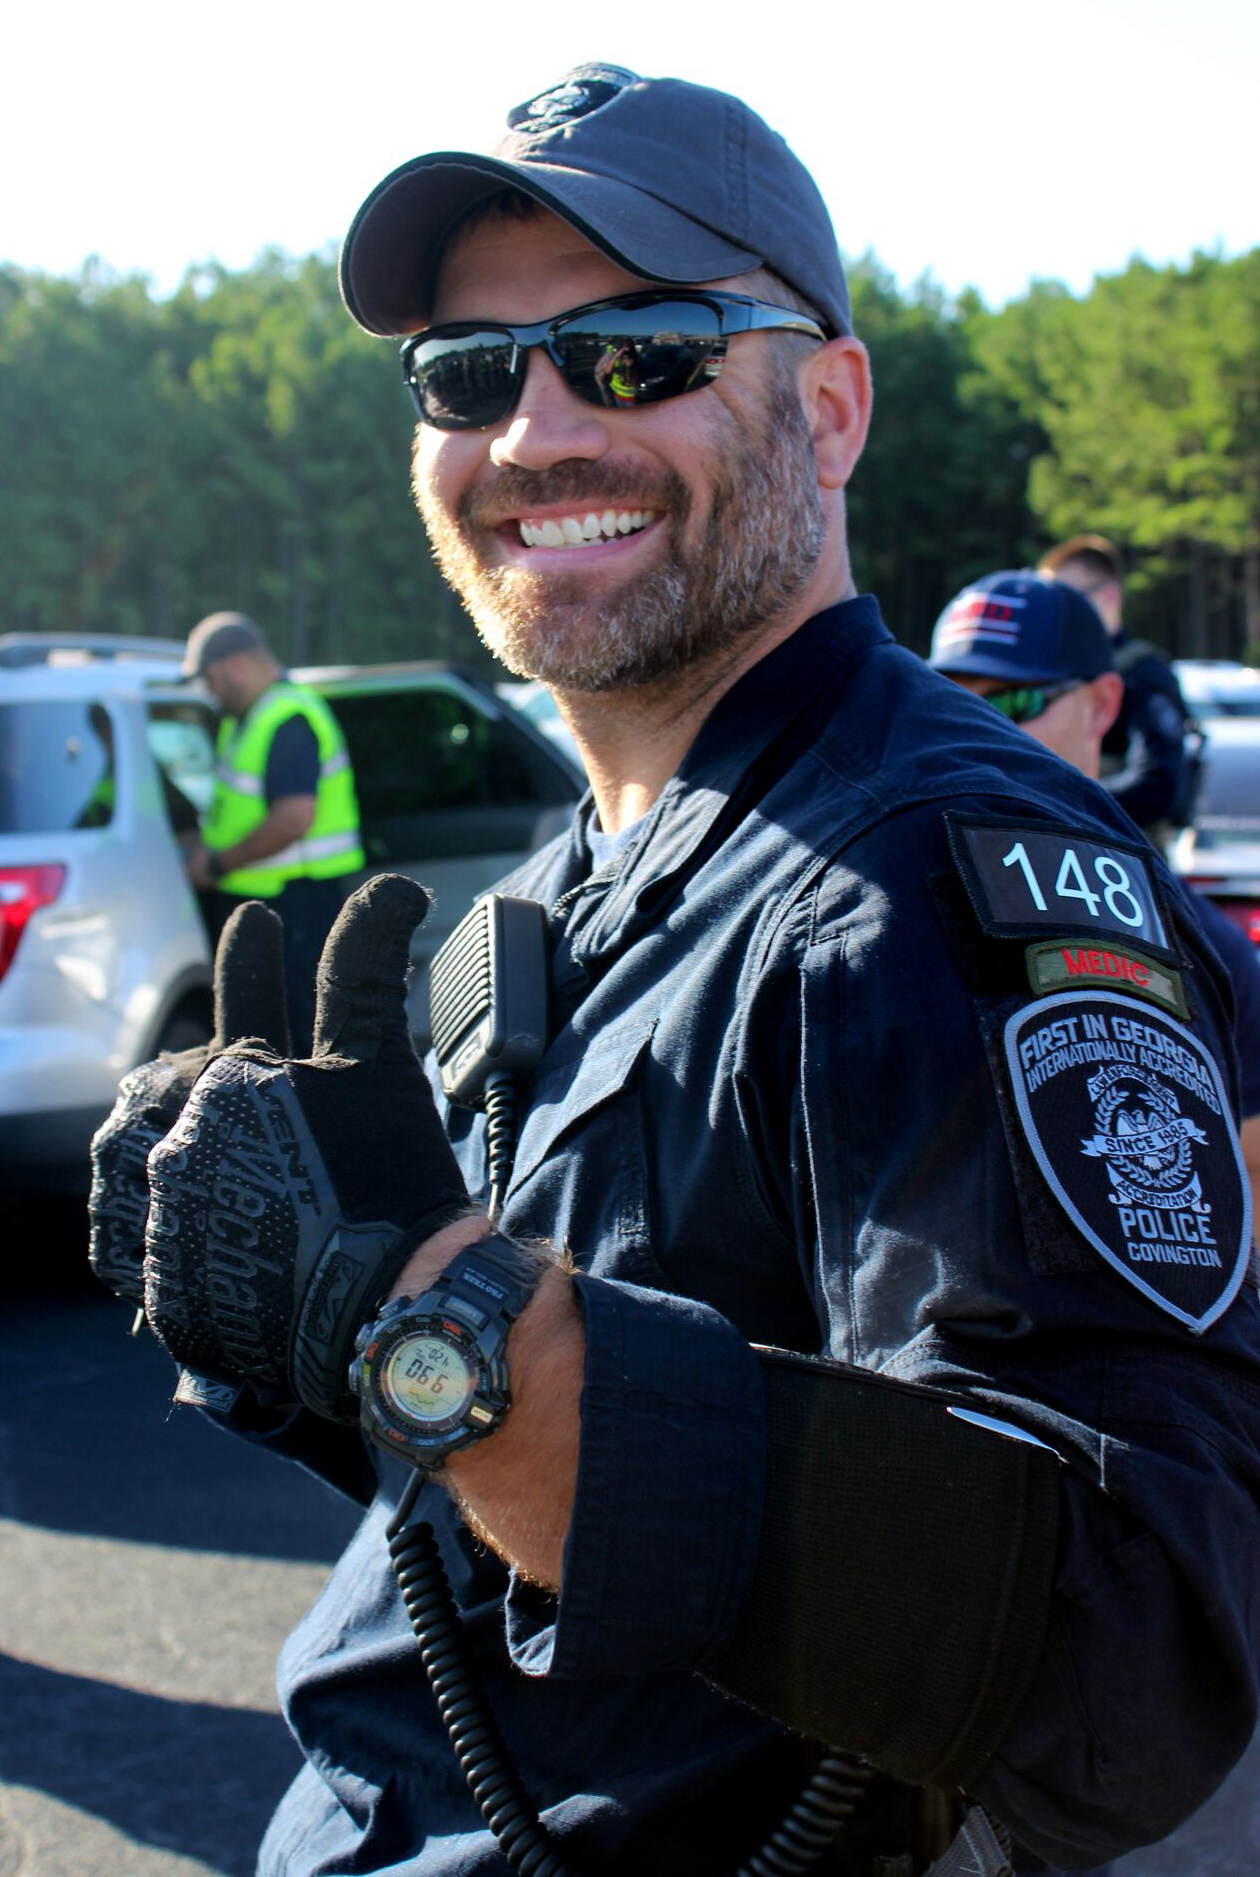 Officer Matt Cooper of the Covington PD